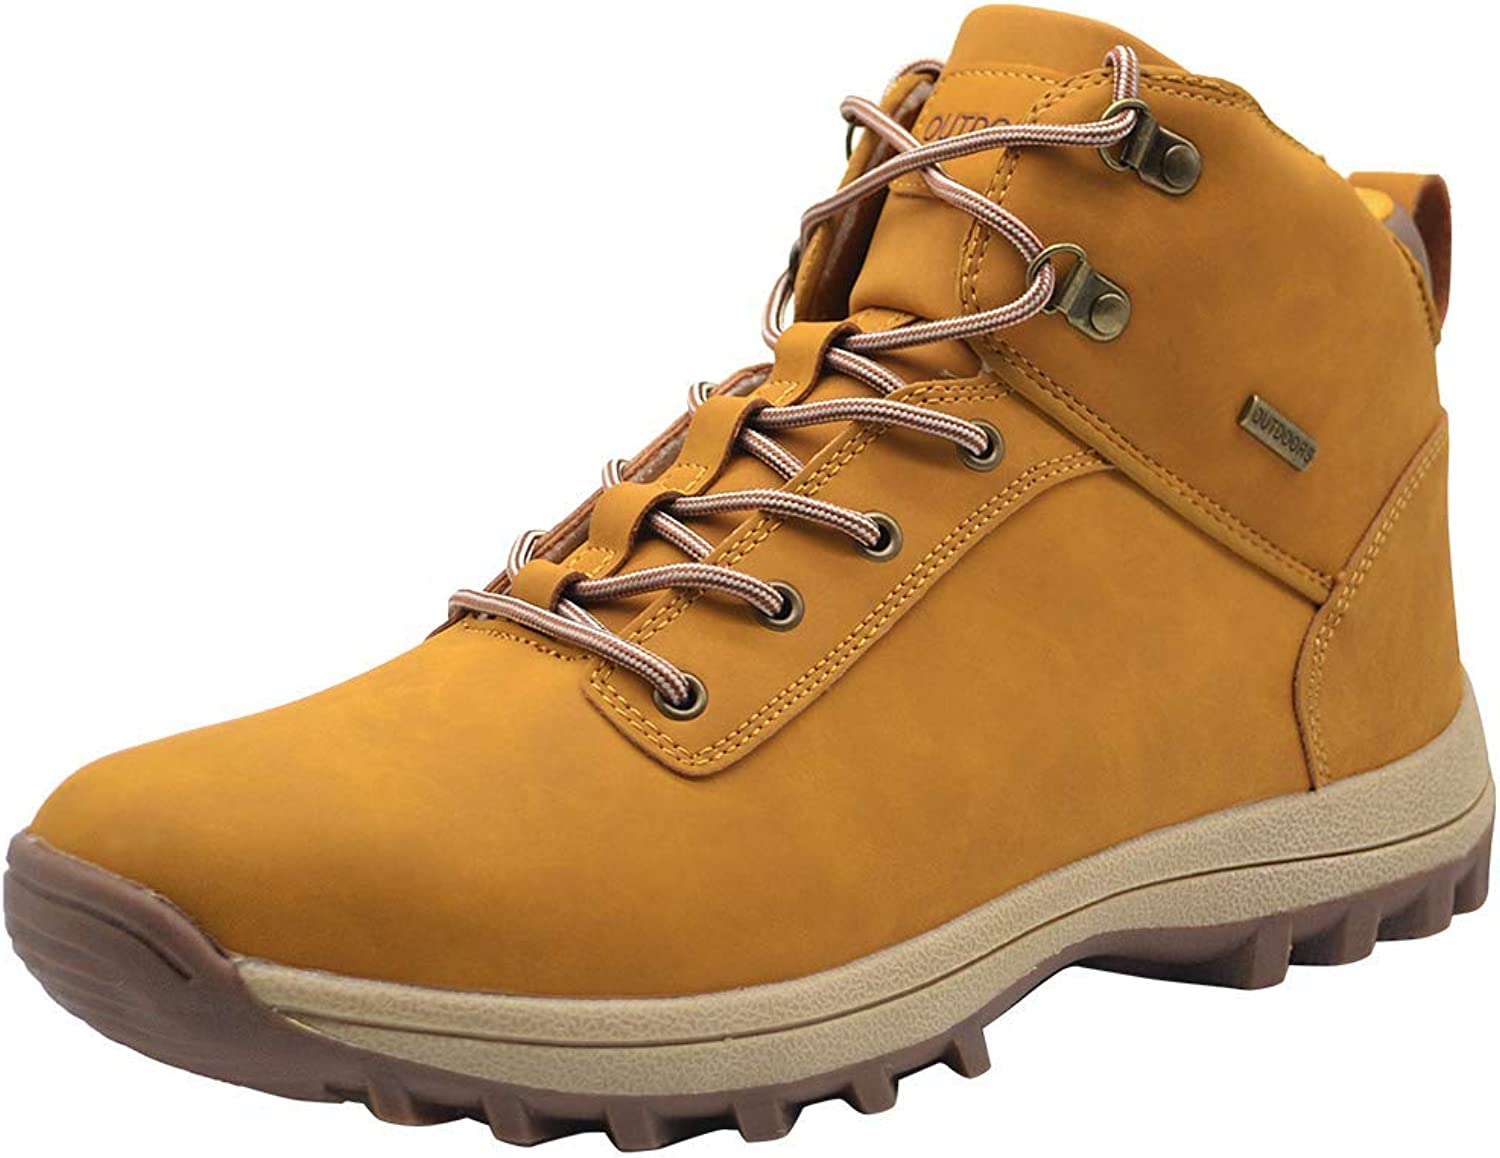 TSIODFO Mens Winter Boots Waterproof Outdoor Ankle Mens Boots PU Leather Lace up Fashion Comforable Trekking Hiking shoes Waterproof Light Brown Size 8 (572-1lightbrown42)